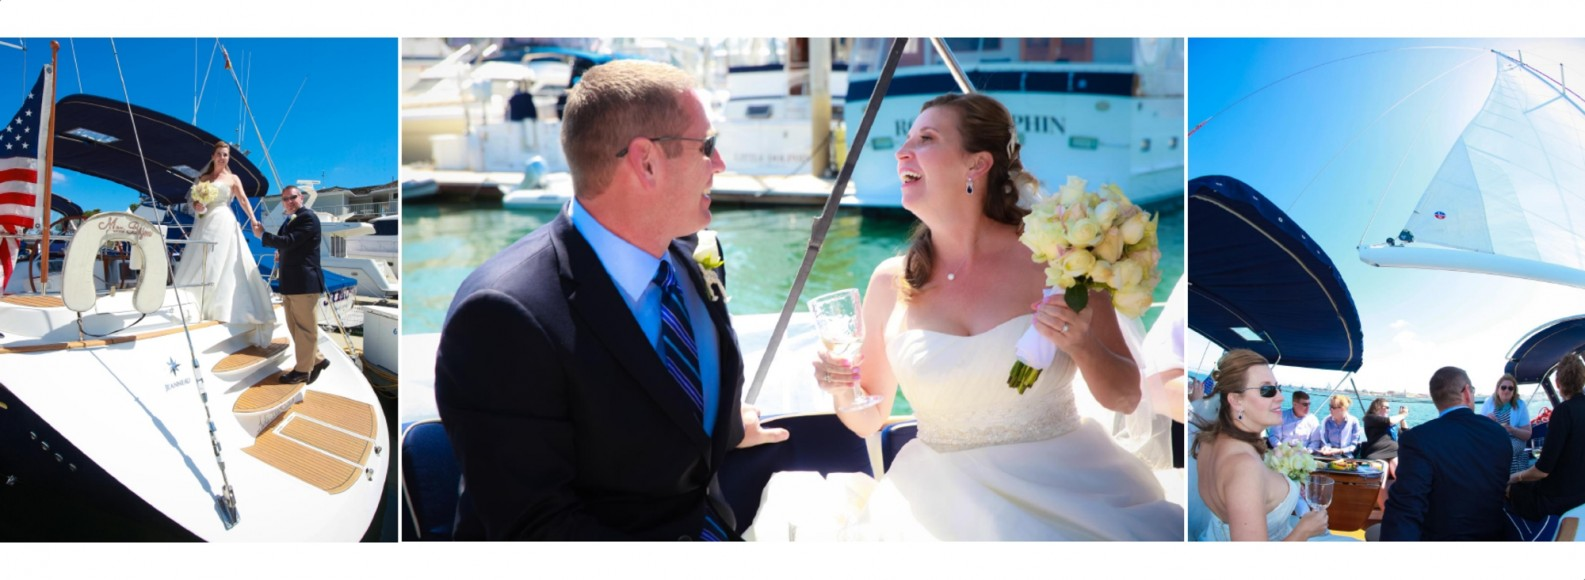 Laura and Davids Wedding Book - San Diego Yacht Wedding by Wedding Photographers Andrew Abouna - Pages 10-11